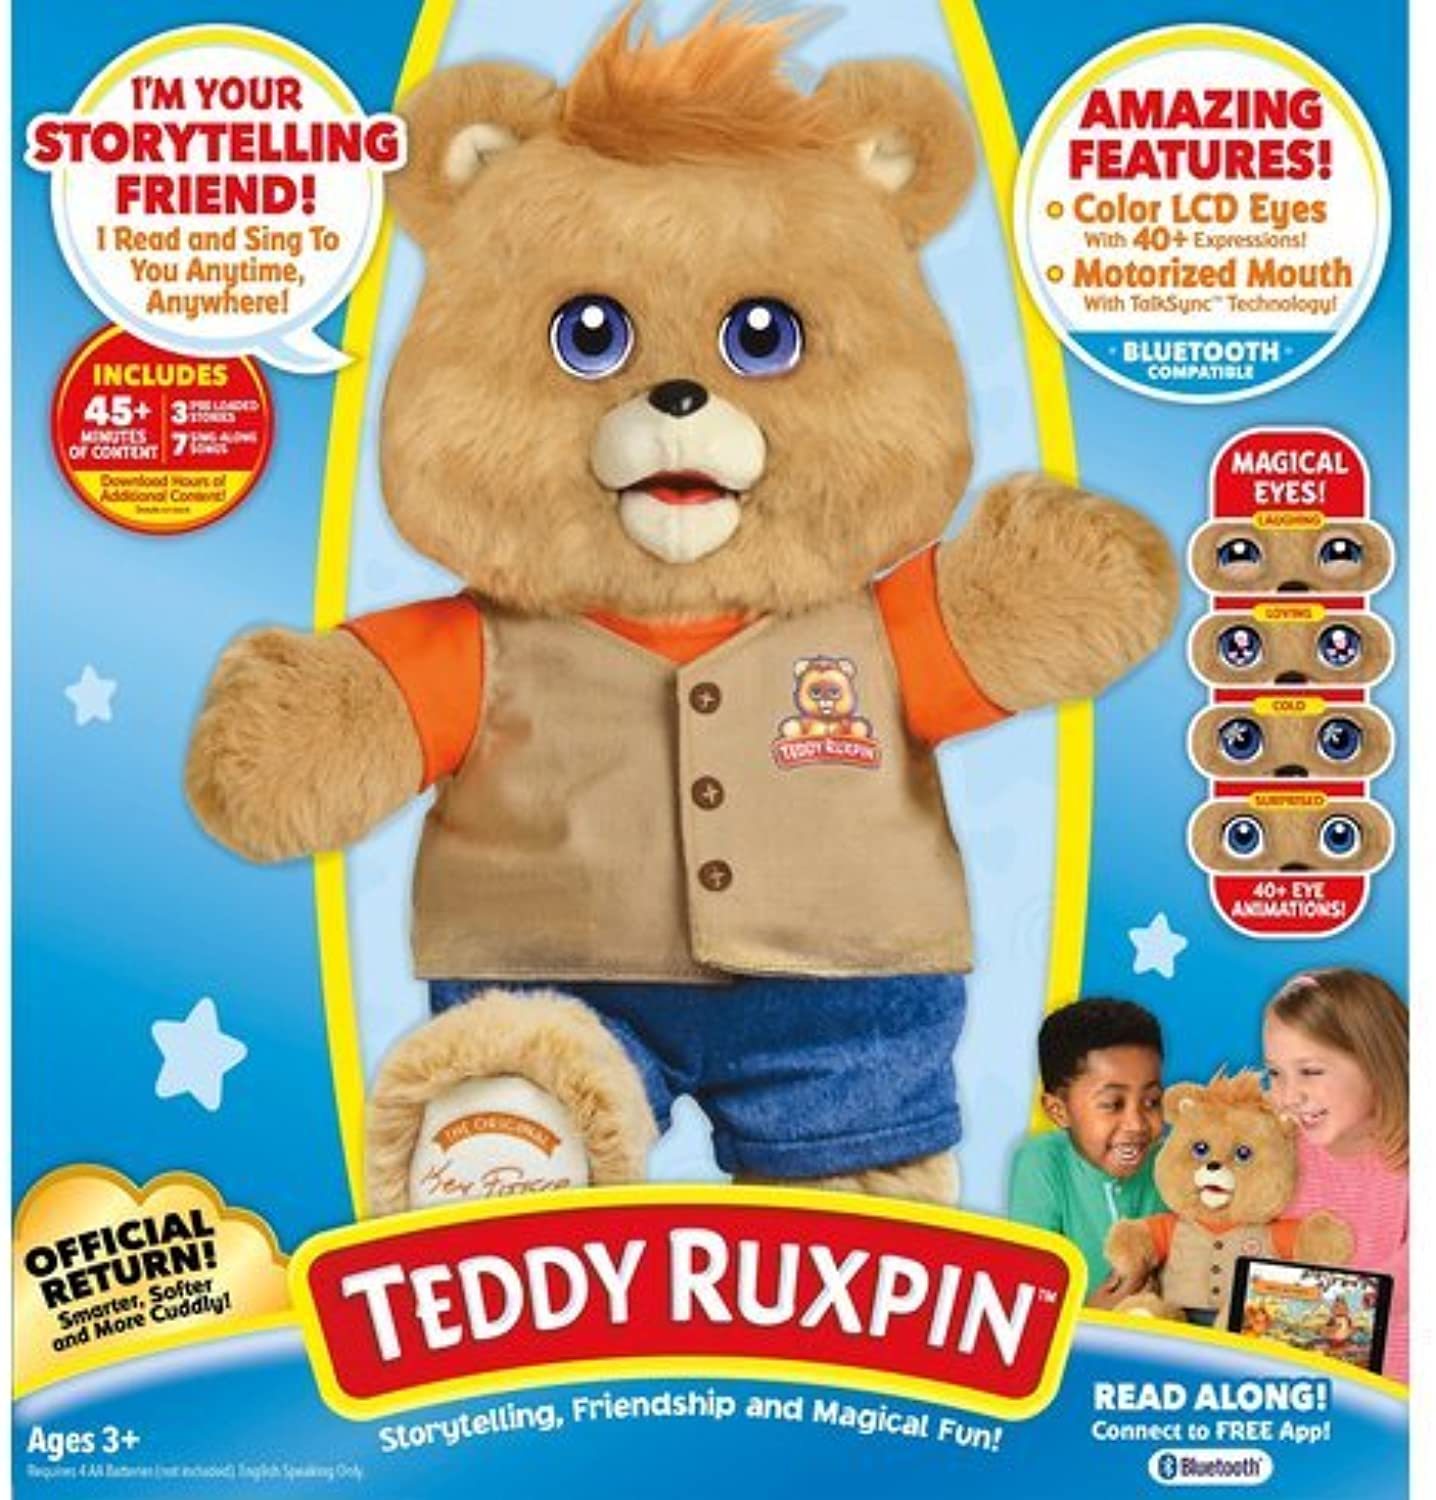 Teddy Ruxpin Interactive Bear With blueetooth Connectivity Comes With Three Stories Included